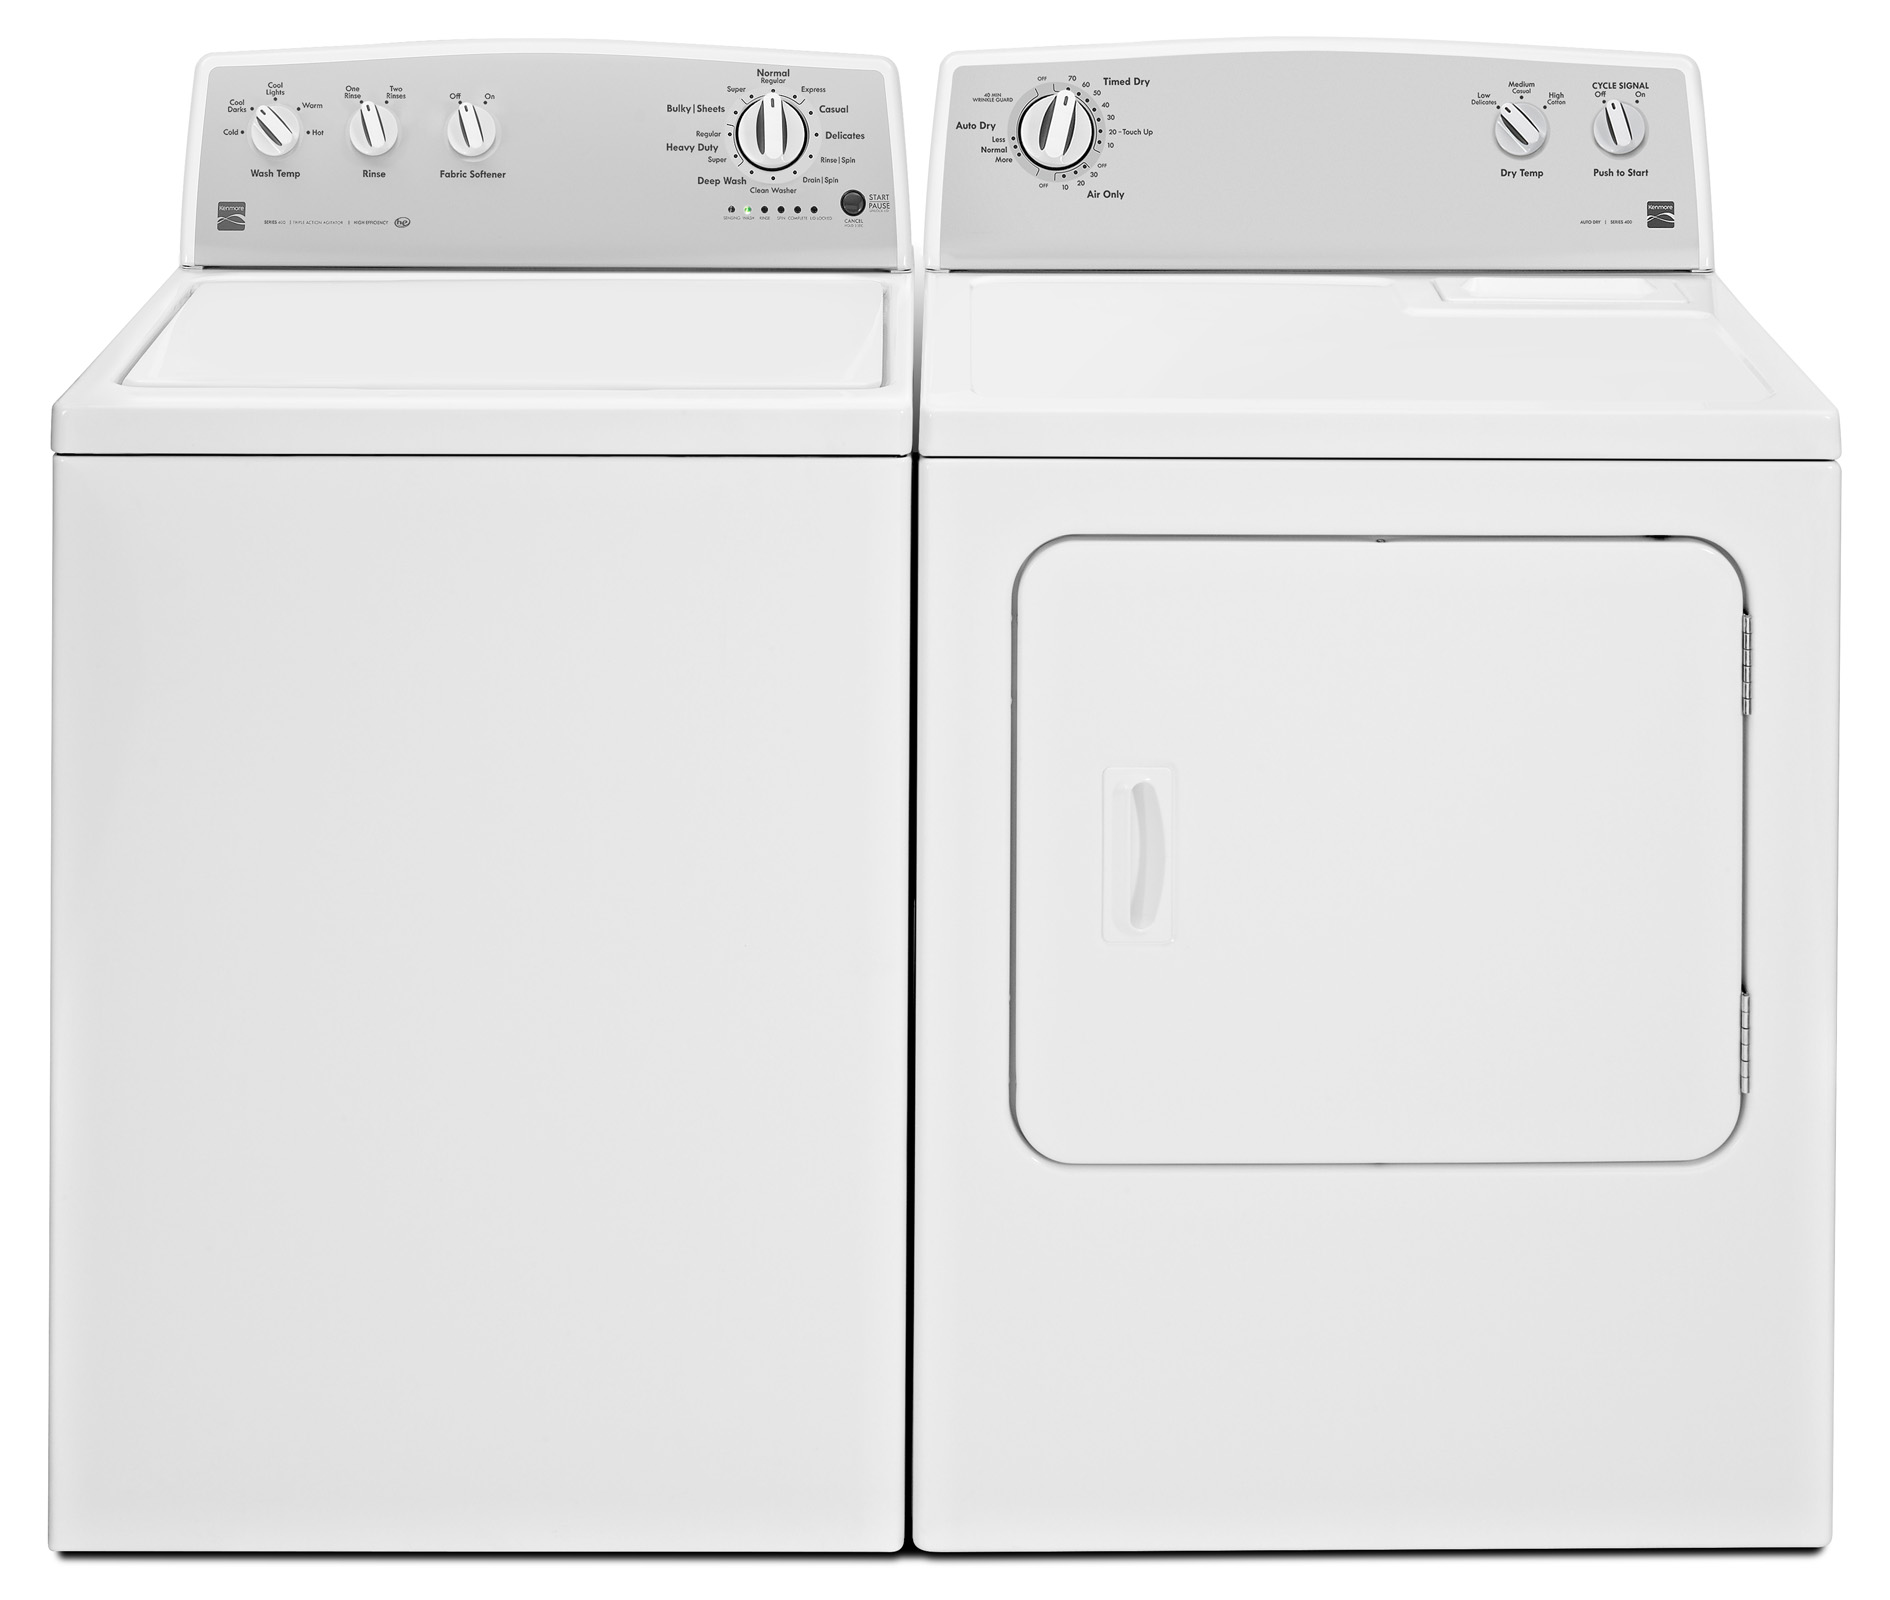 Kenmore 22102 3.5 cu. ft. Top-Load Washer - White